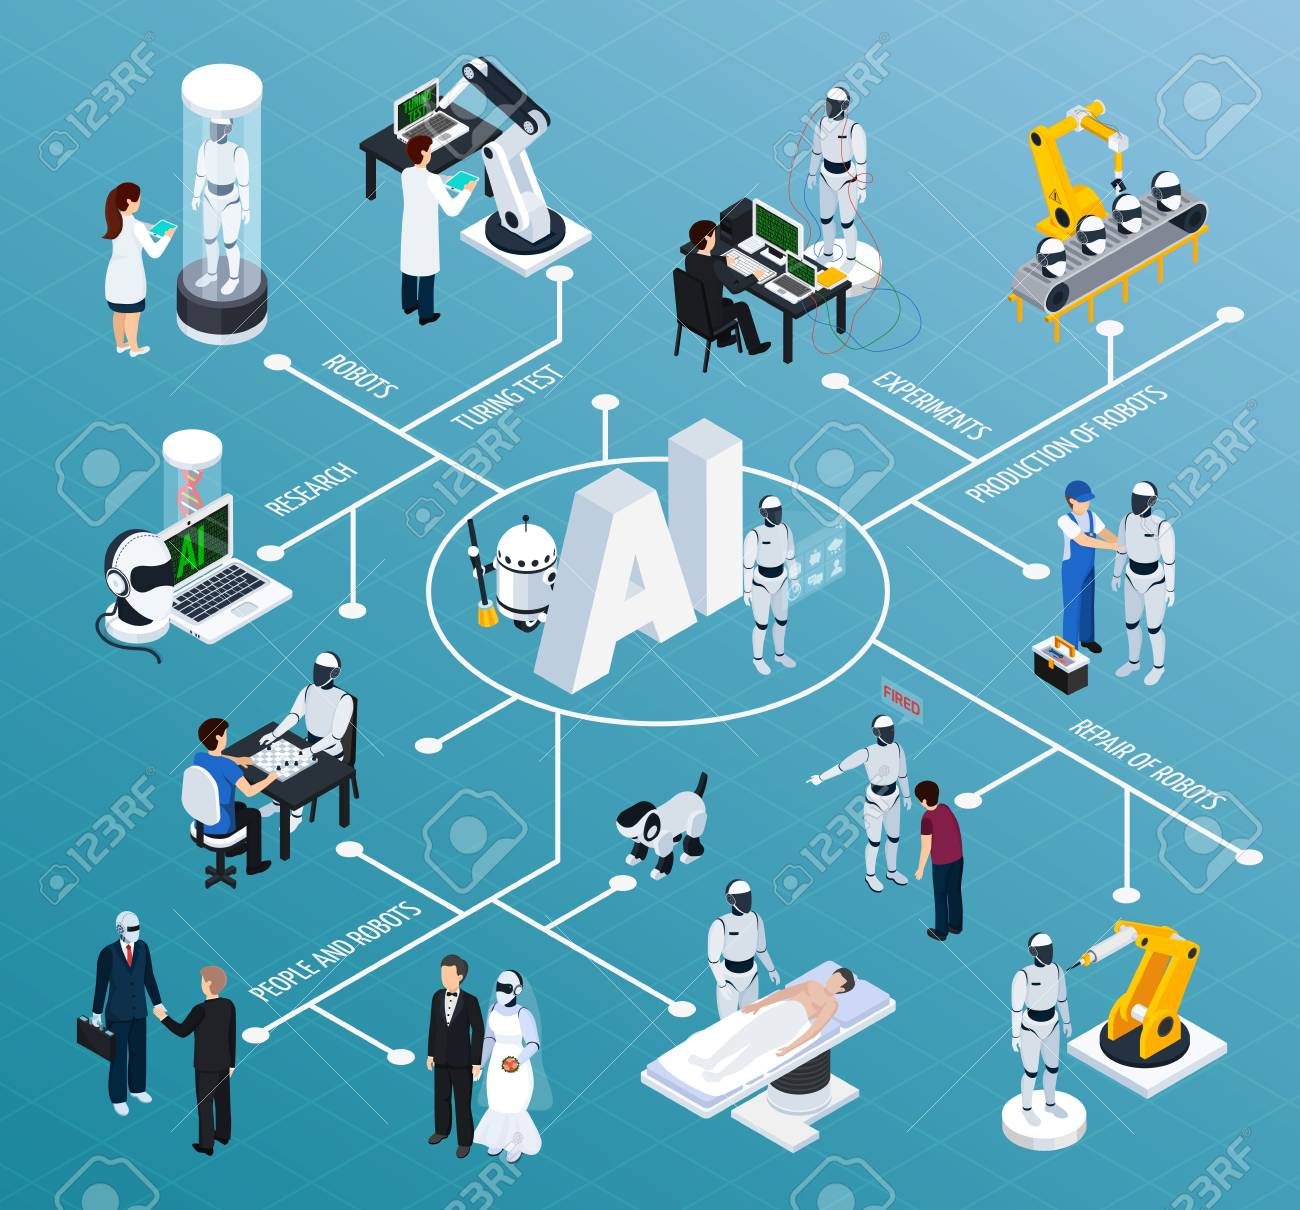 Artificial intelligence flowchart with robotics and technology symbols isometric vector illustration - 95591741